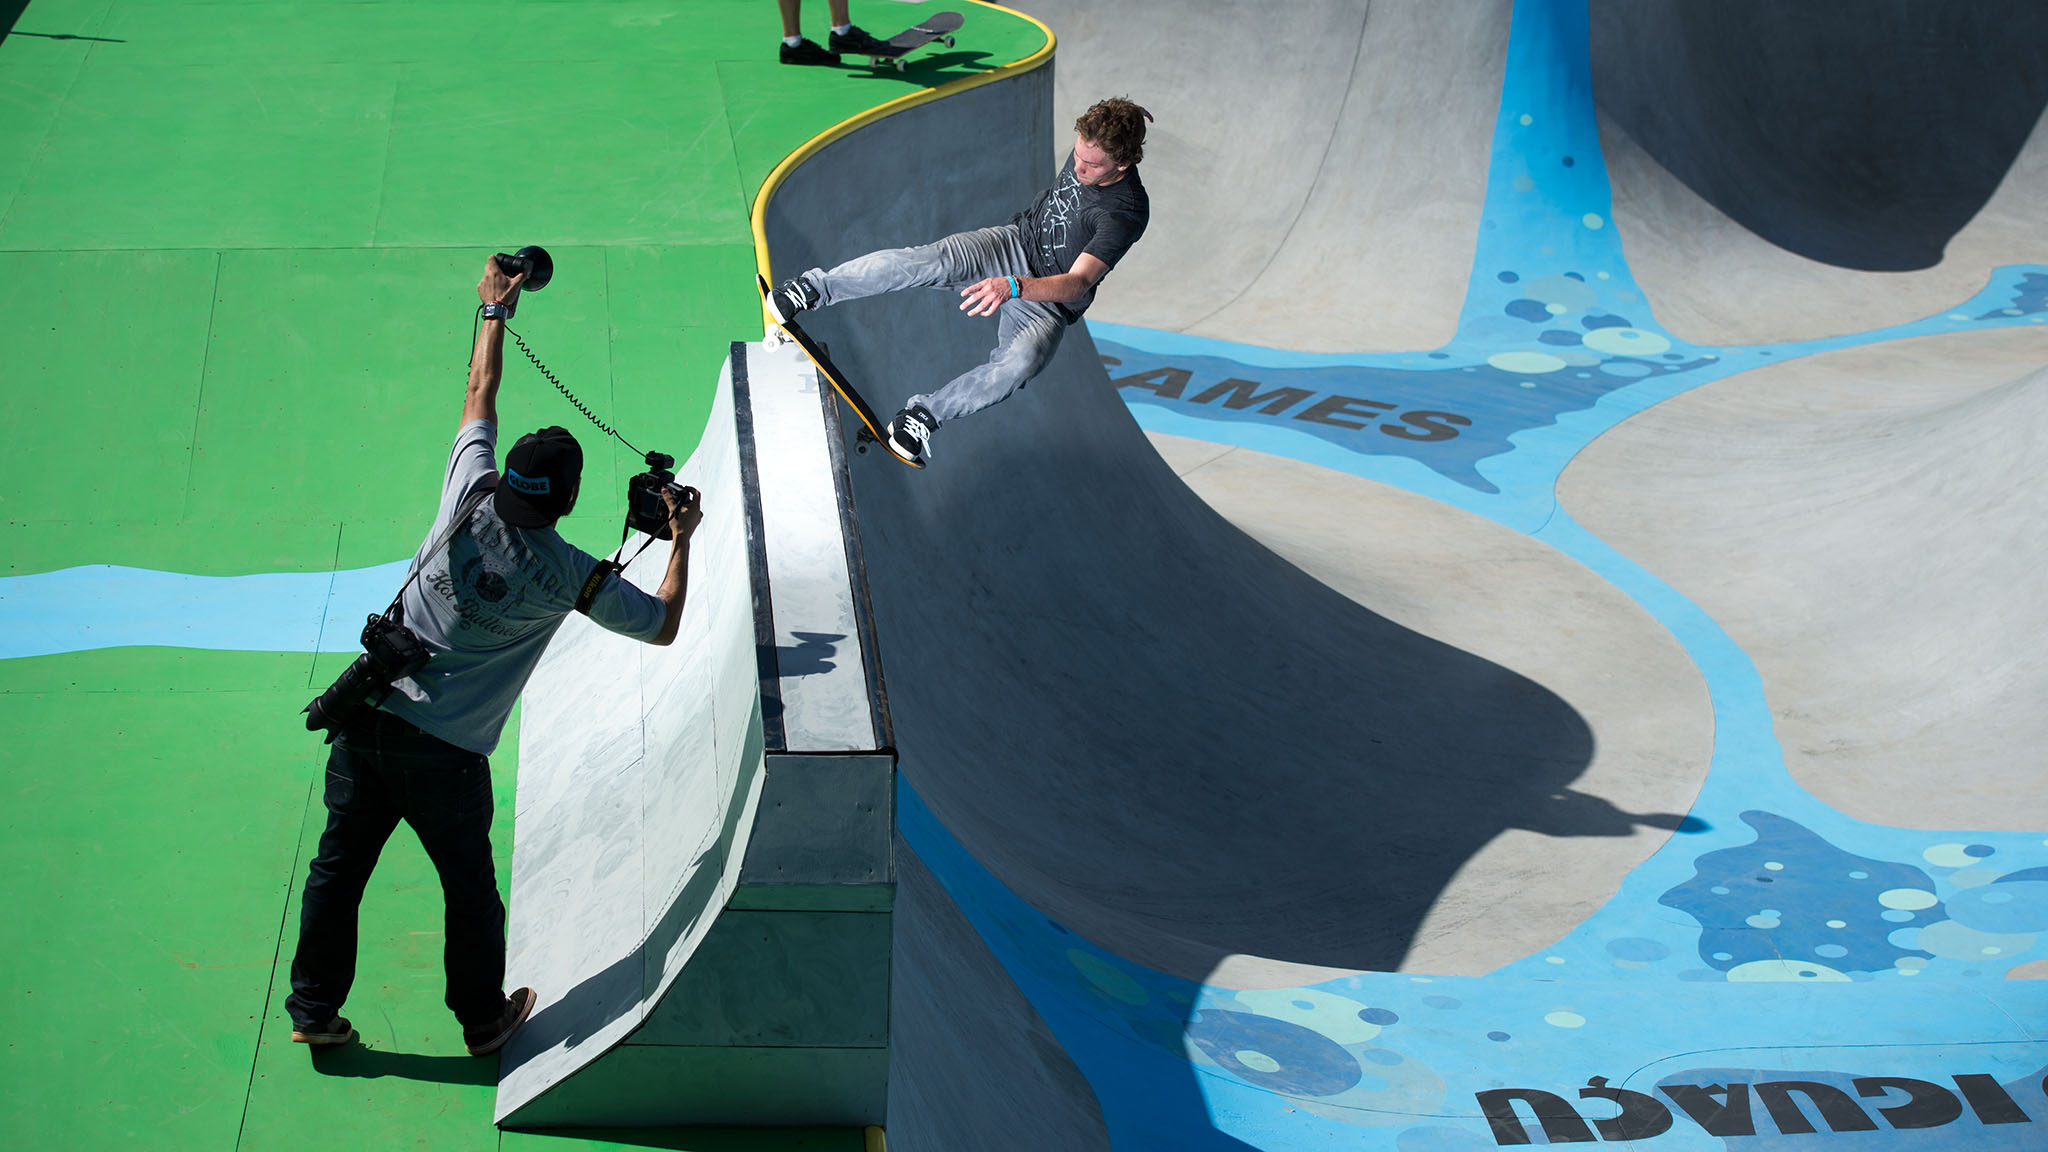 Originally a Skateboard Vert competitor, Ben Hatchell used his skate bowl experience to transition into the Skateboard Park category. Hatchell traveled to X Games Foz and quickly adapted to the park course during practice on X Games at Thursday.